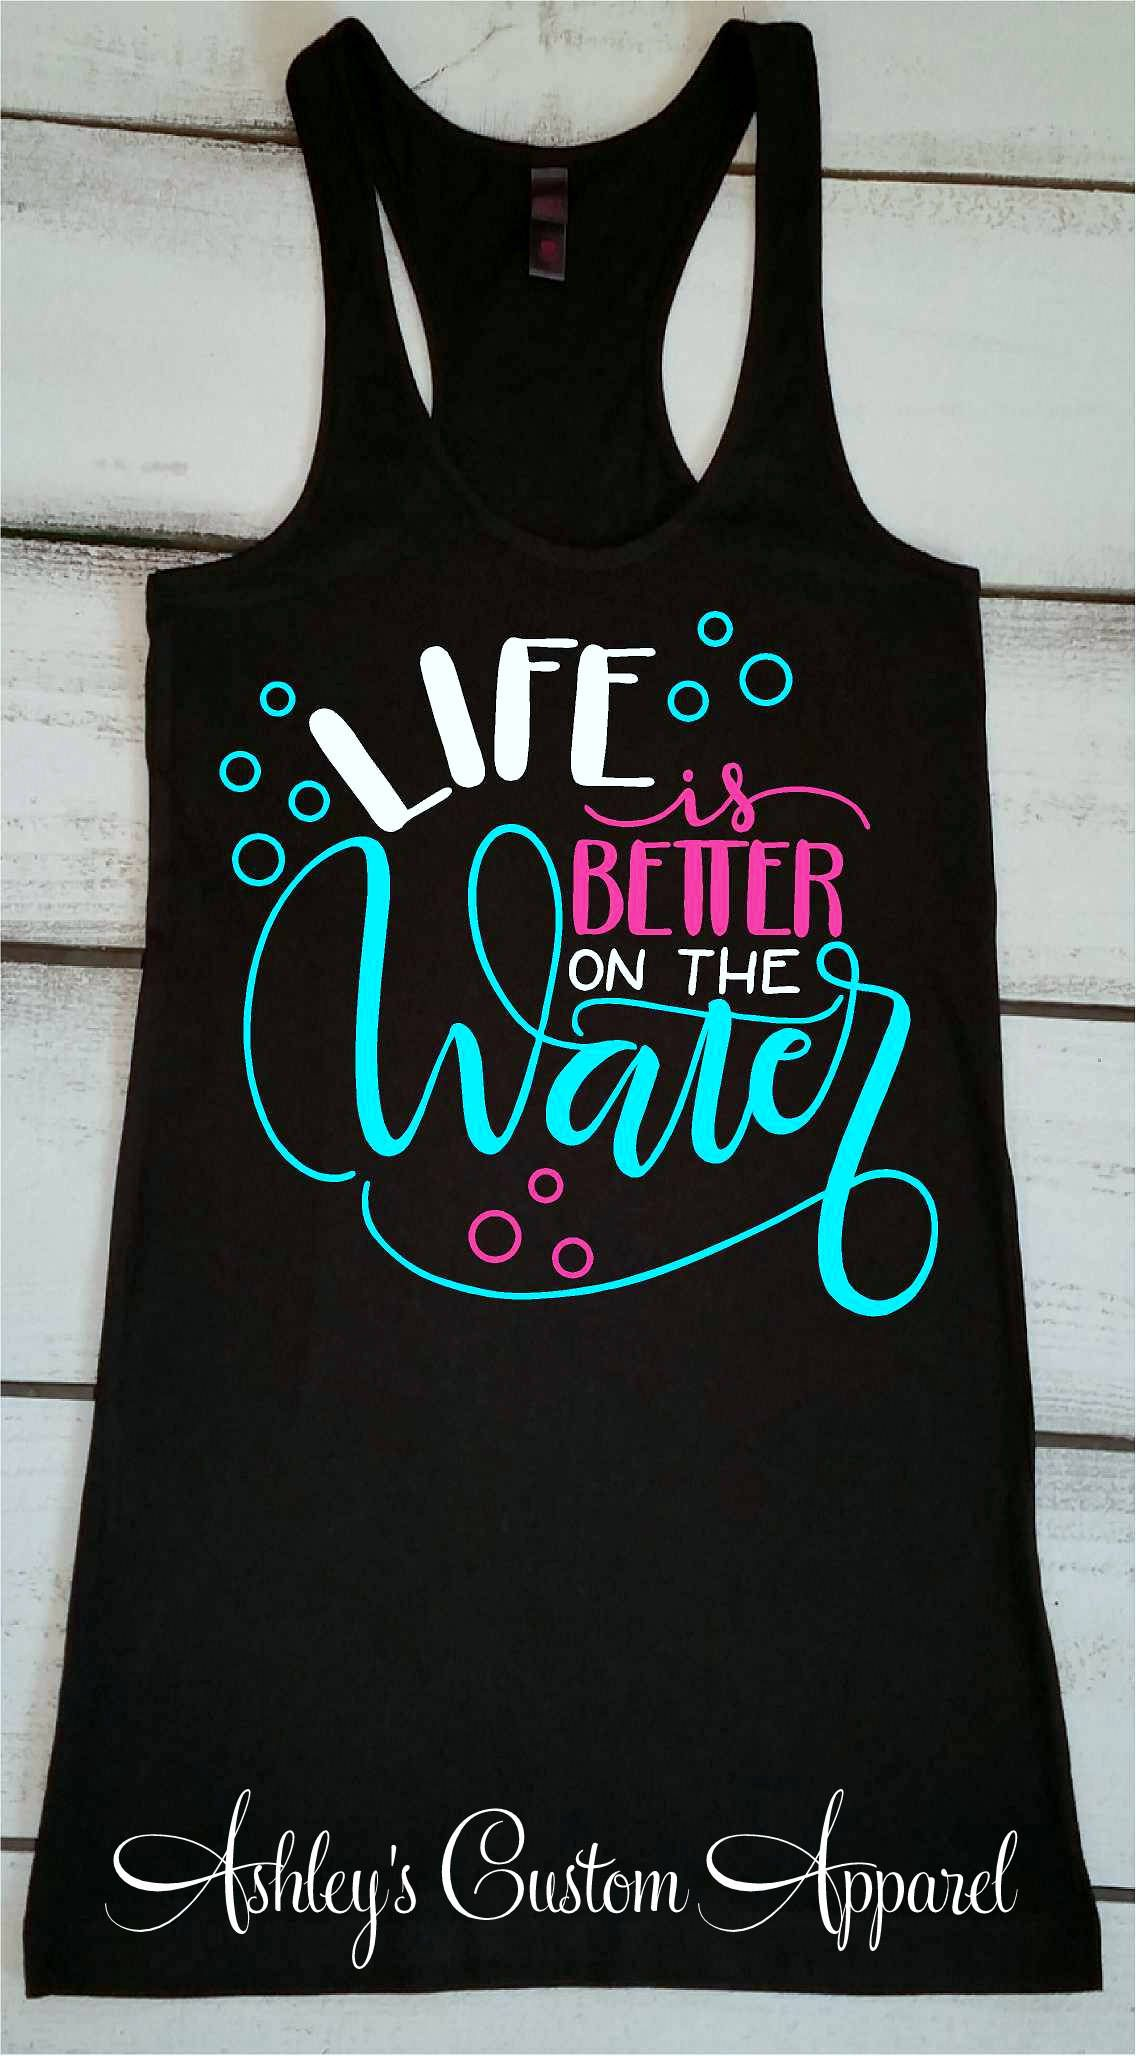 09ca018c60aad Cruise Shirts Boating Tank Top Life Is Better Girls Trip. Cruise Shirts  Boating Tank Top Life Is Better Girls Trip Beach Tanks ...